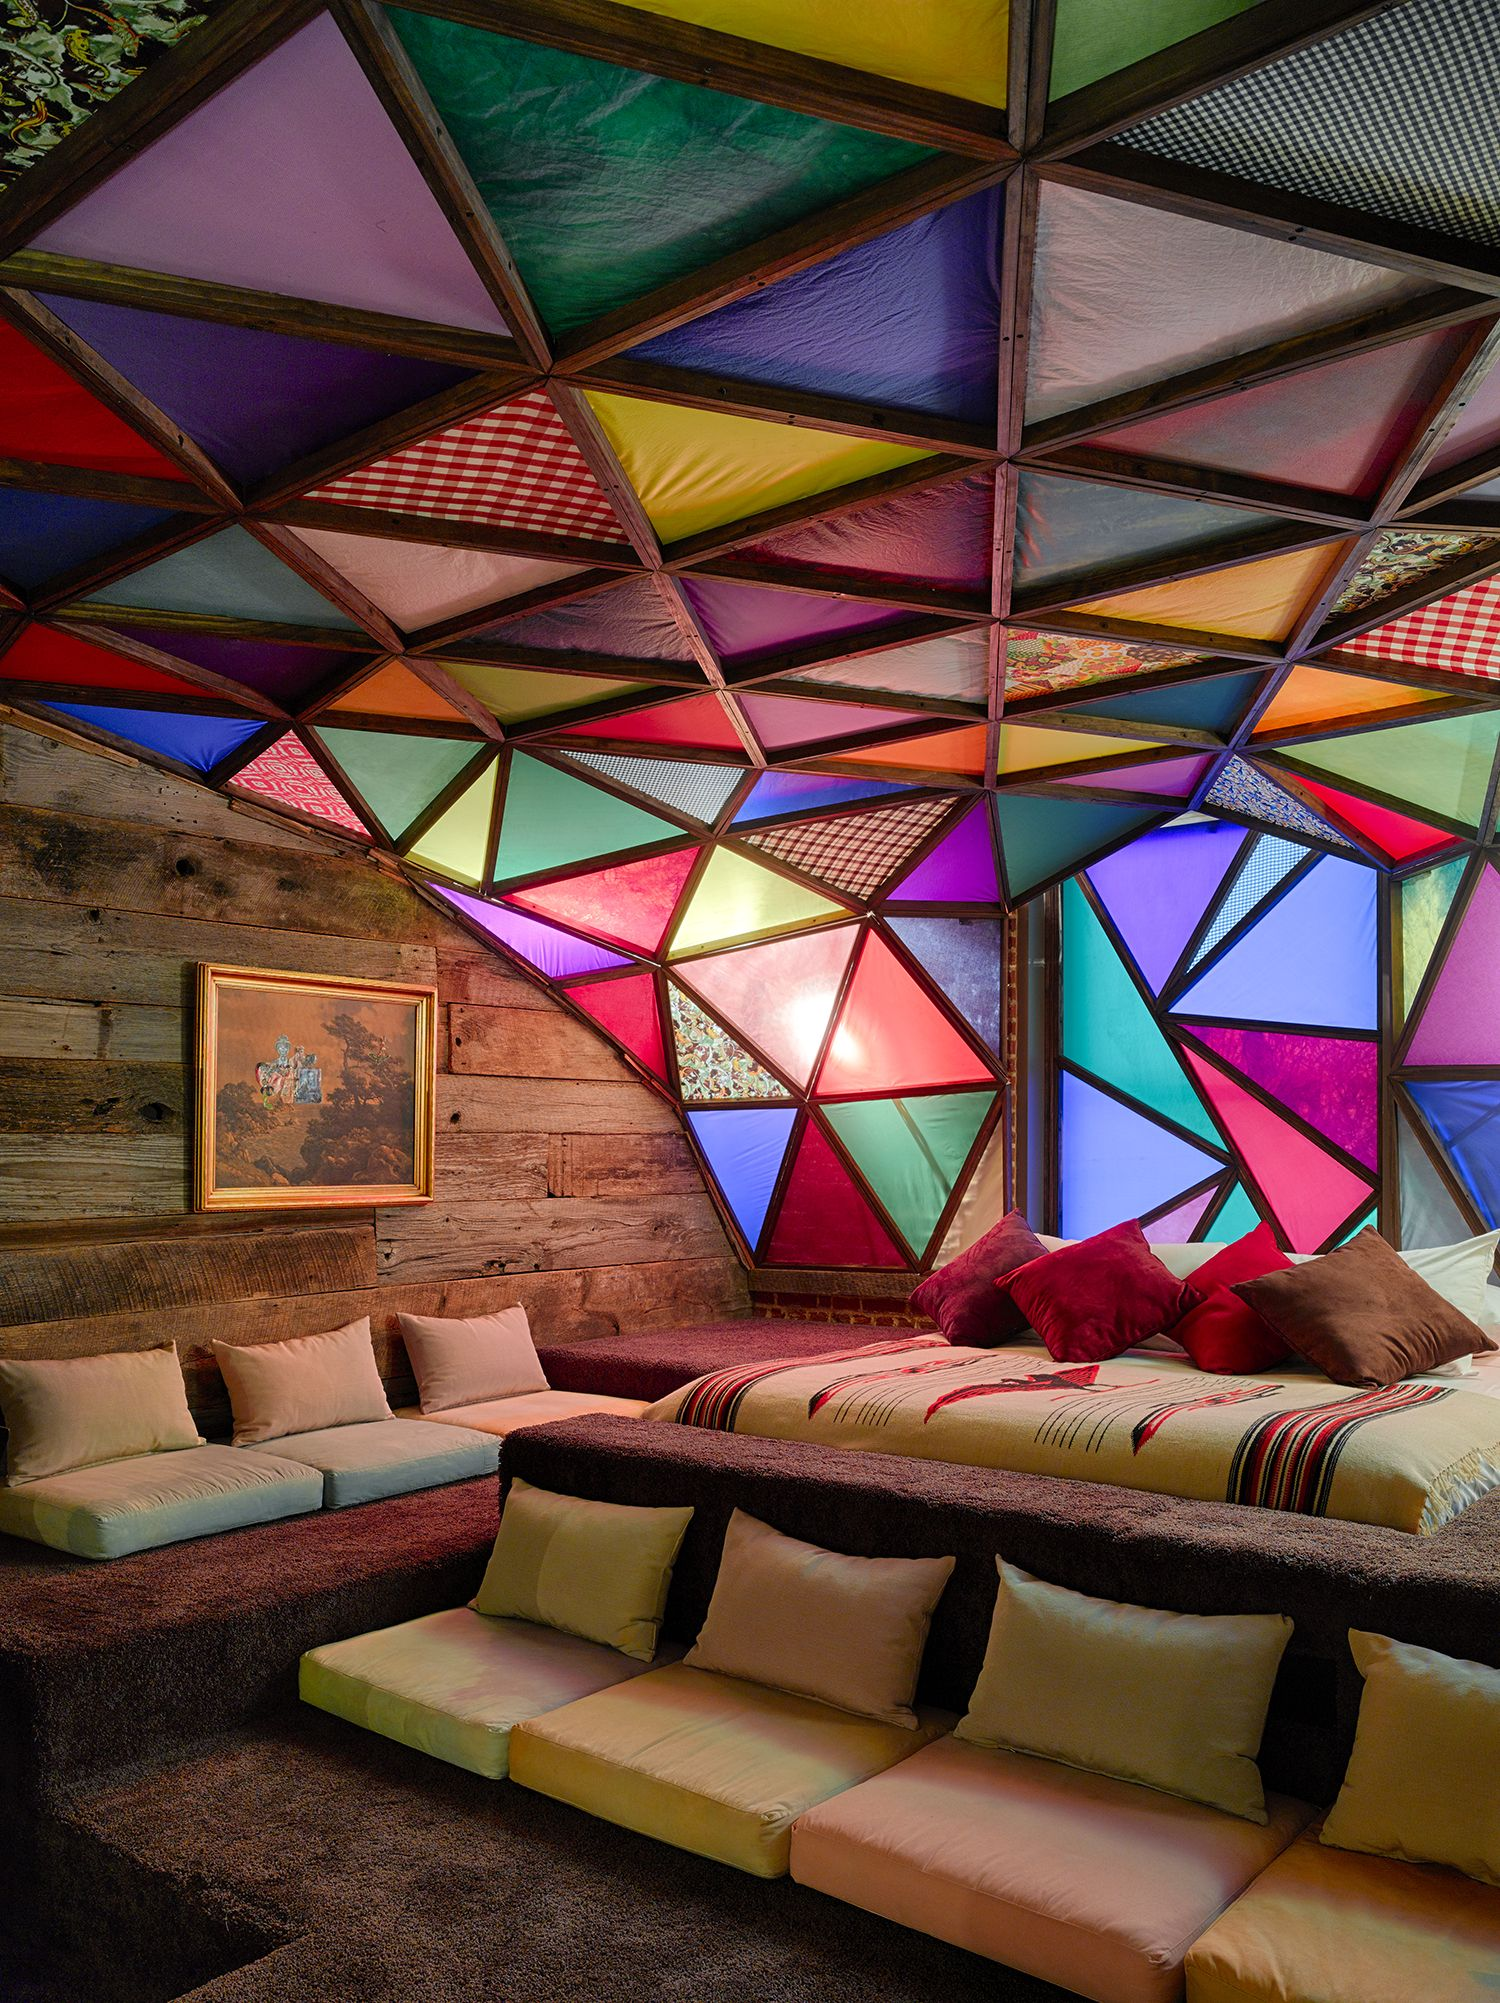 21 C Museum Hotels Is A Louisville Based Combination Of Contemporary Art And Boutique